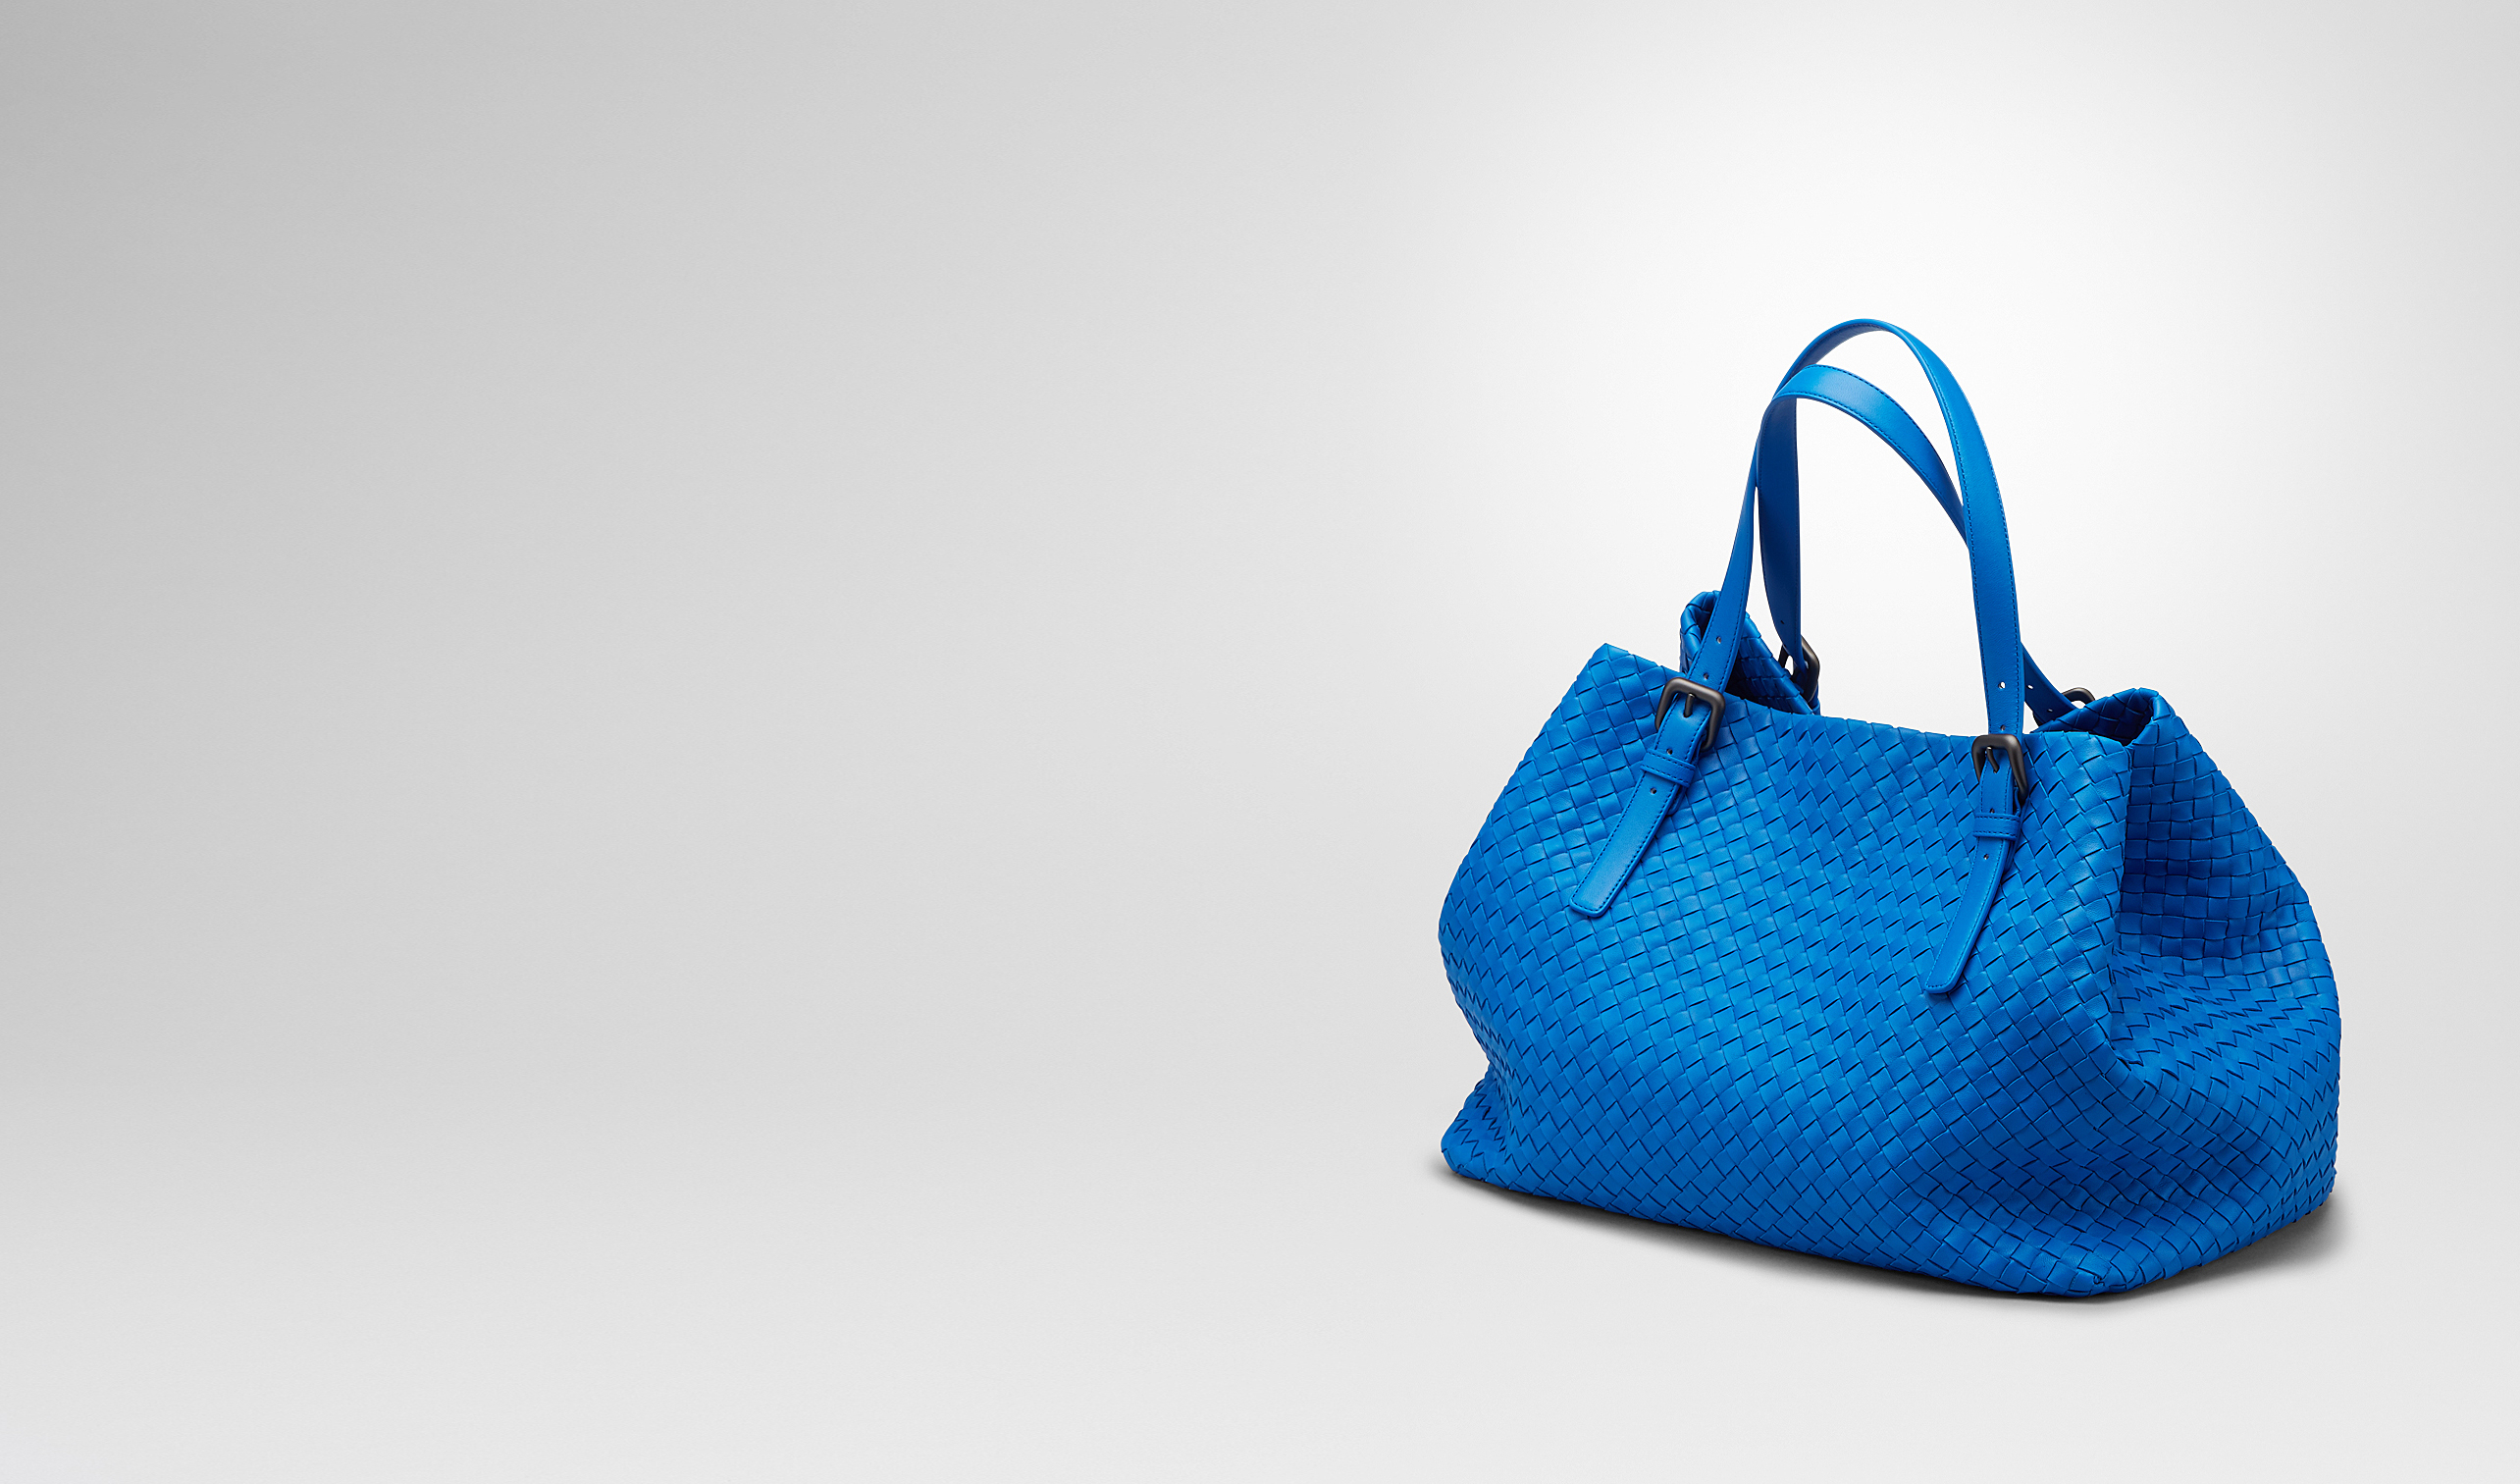 BOTTEGA VENETA Tote Bag D SIGNAL BLUE INTRECCIATO NAPPA TOTE BAG pl